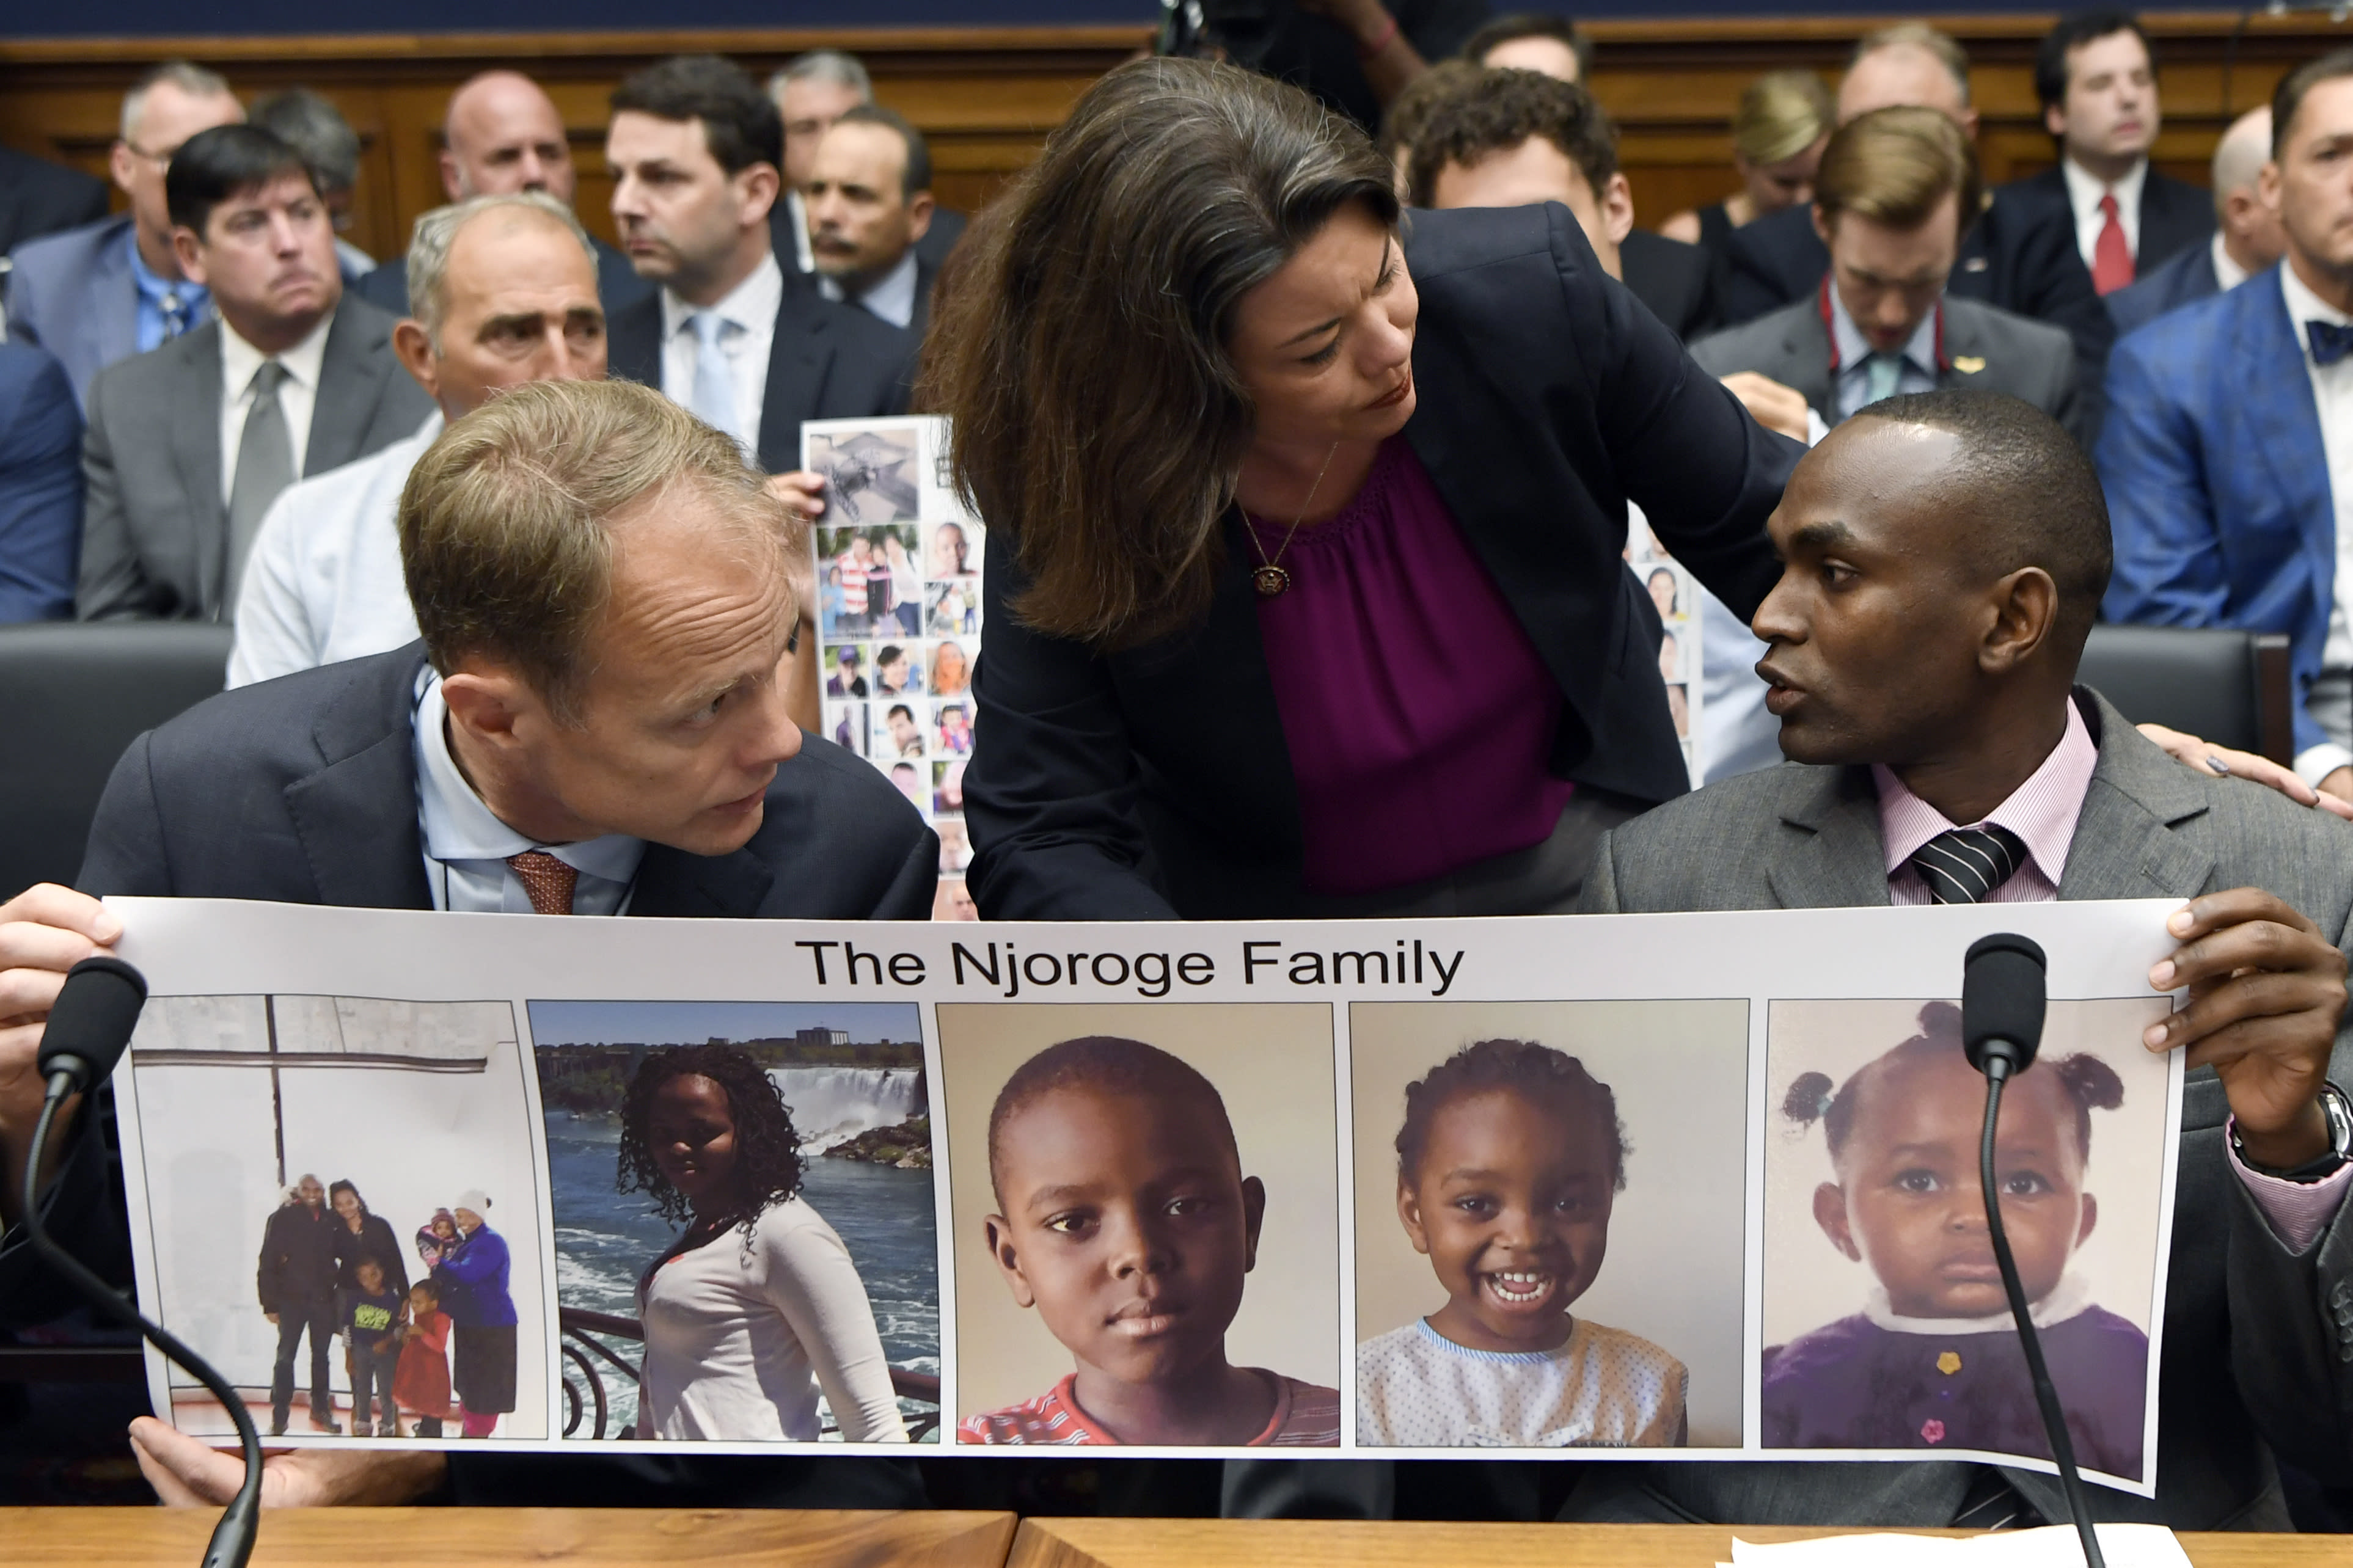 Rep. Angela Craig, D-Minn., center, talks with Paul Njoroge, right, as Michael Stumo, left, looks on before the start of a House Transportation subcommittee hearing on Capitol Hill in Washington, Wednesday, July 17, 2019, on aviation safety. Njoroge lost his wife and three young children on Ethiopian Airlines Flight 302 and Stumo lost his daughter on the same flight. The plane was a Boeing 737 MAX. (AP Photo/Susan Walsh)